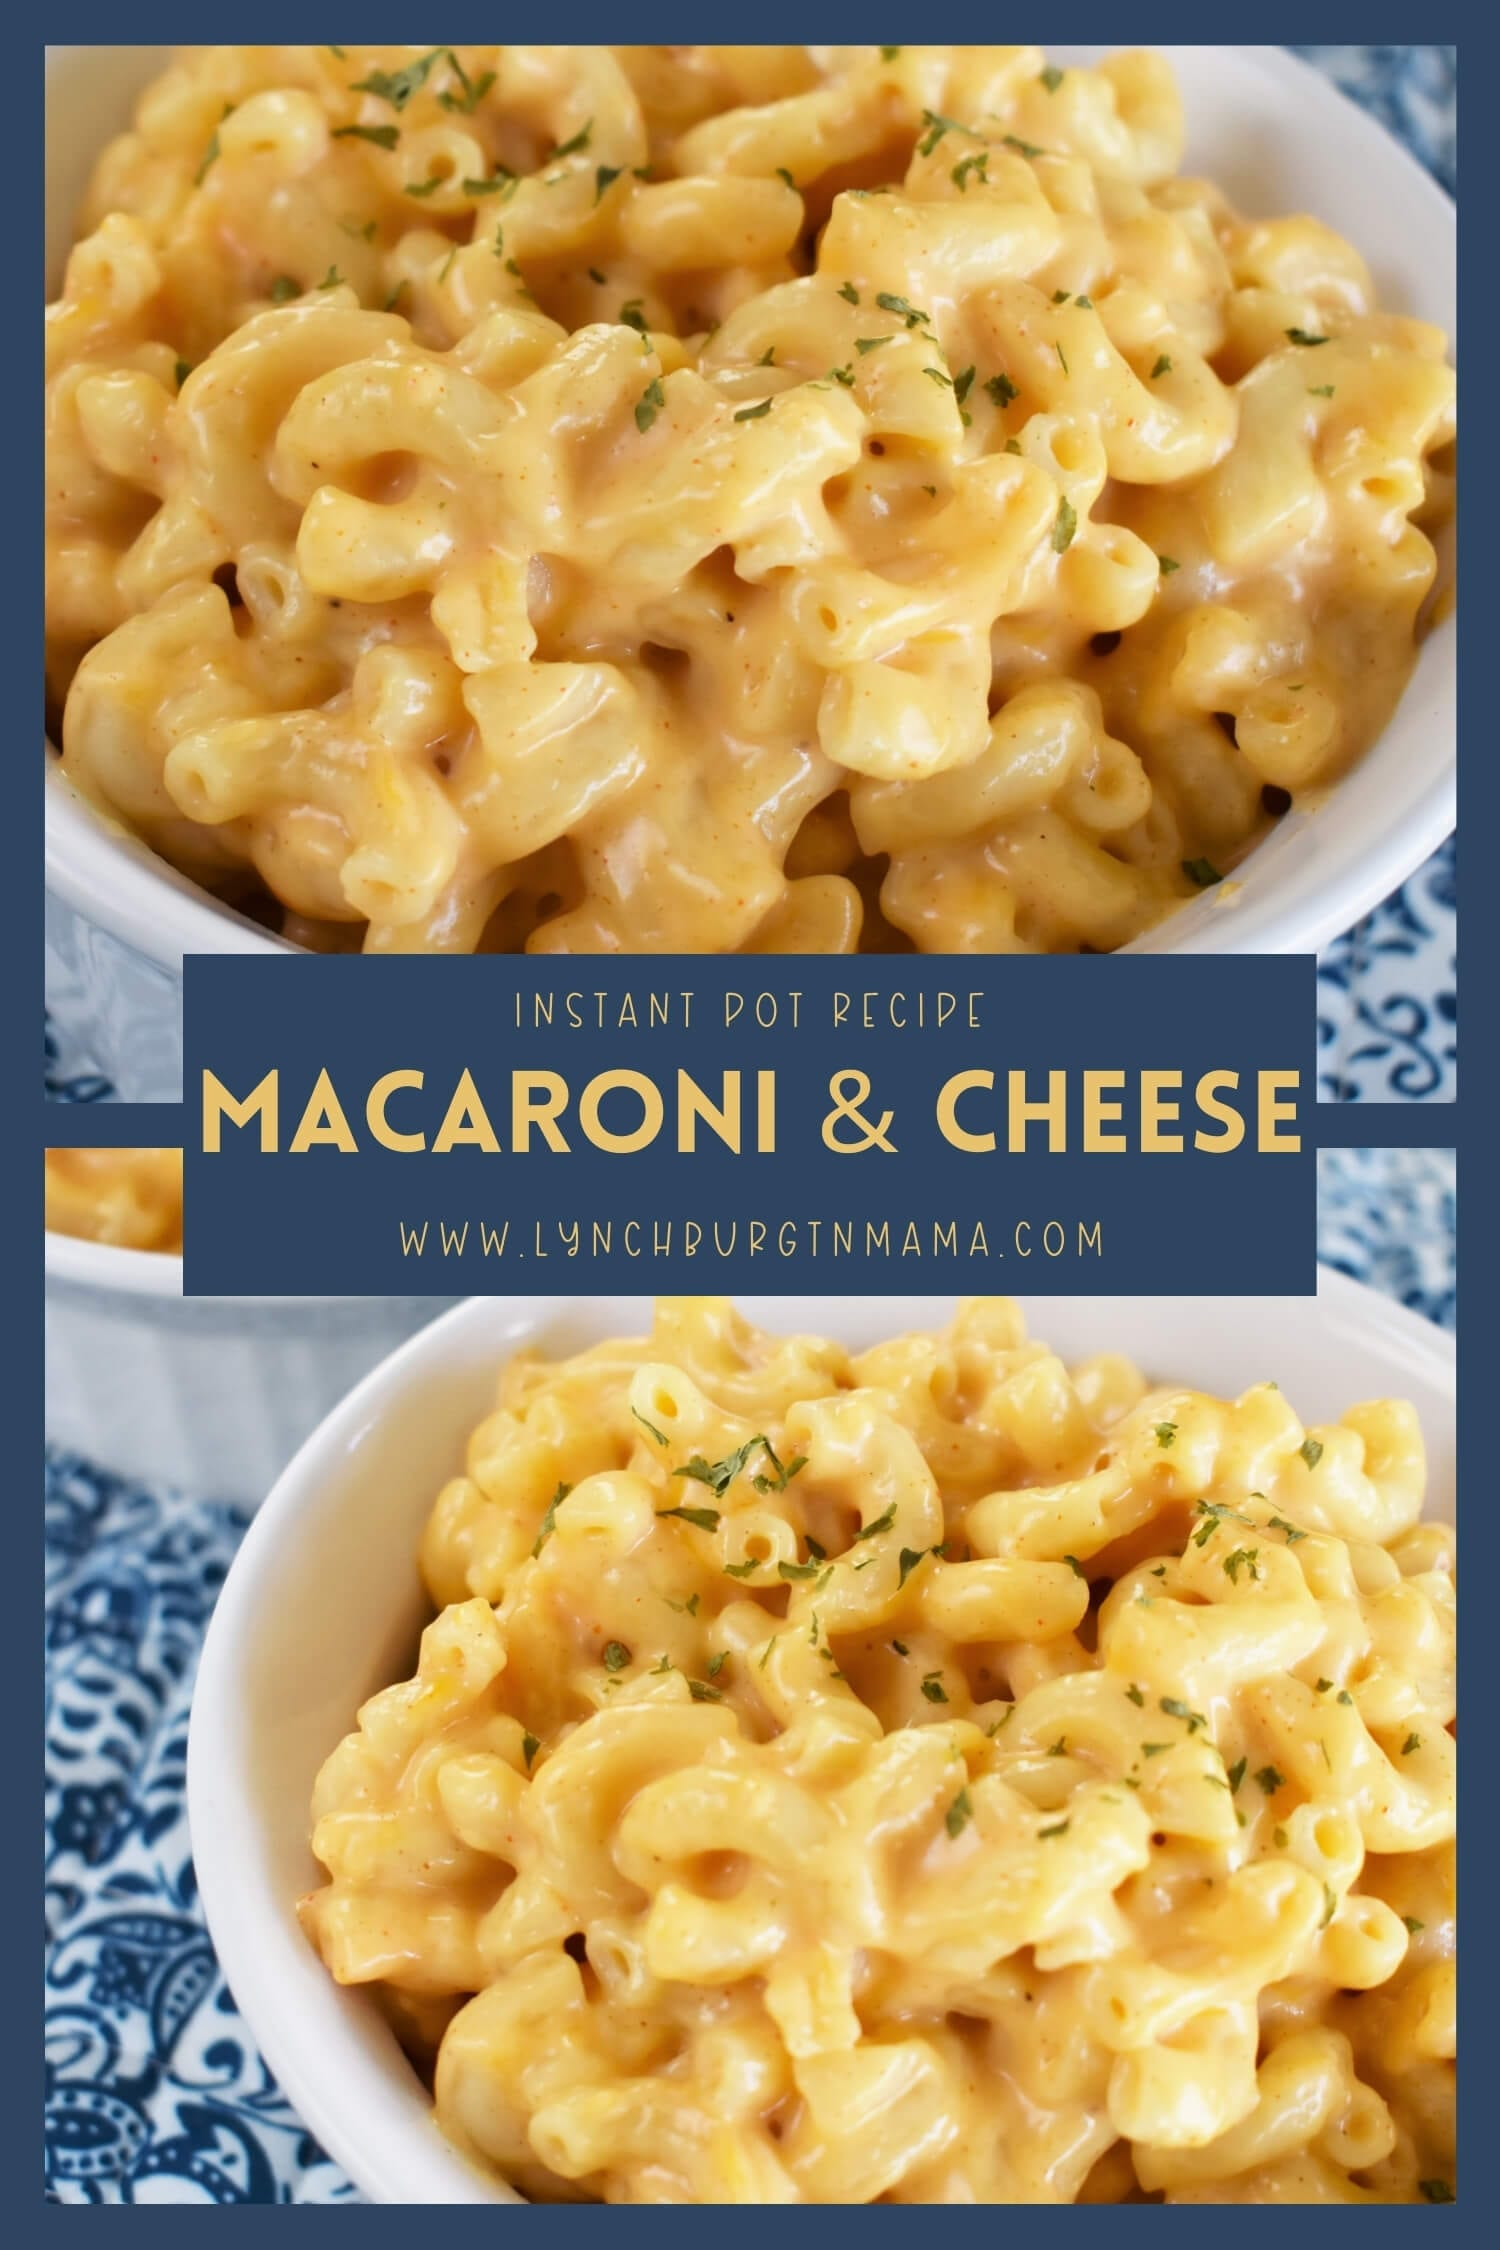 Instant Pot Macaroni and Cheese is a comfort food game-changer! In about 20 minutes, you can have this dish on the table and your family full of smiles!